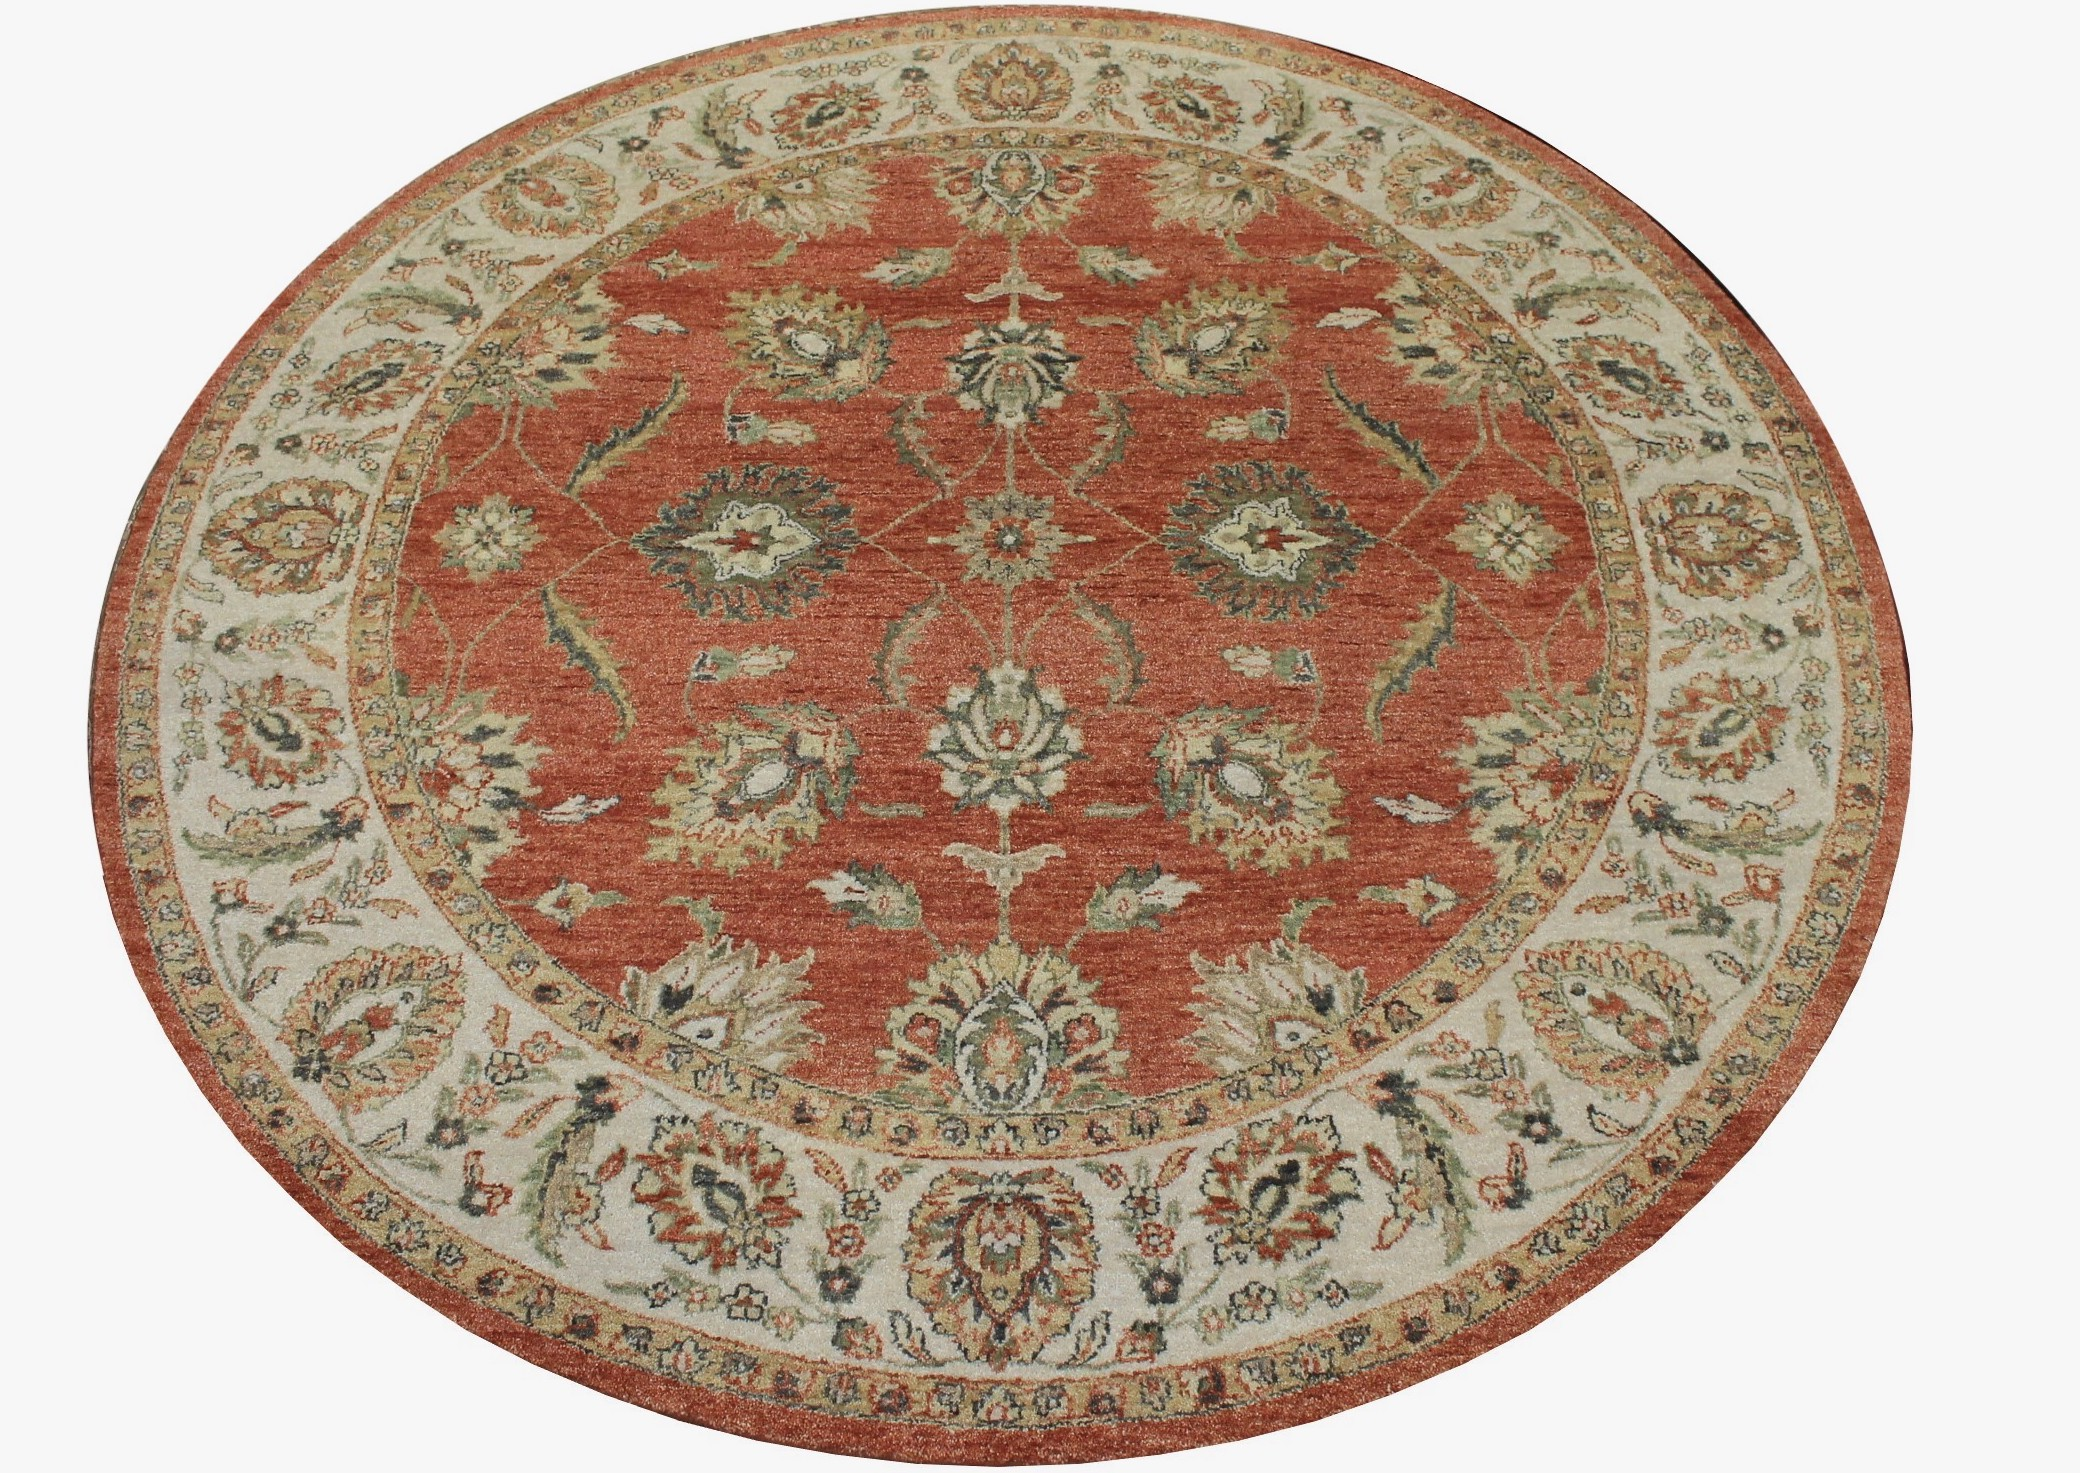 8 ft. Round & Square Traditional Hand Knotted Wool Area Rug - MR8232